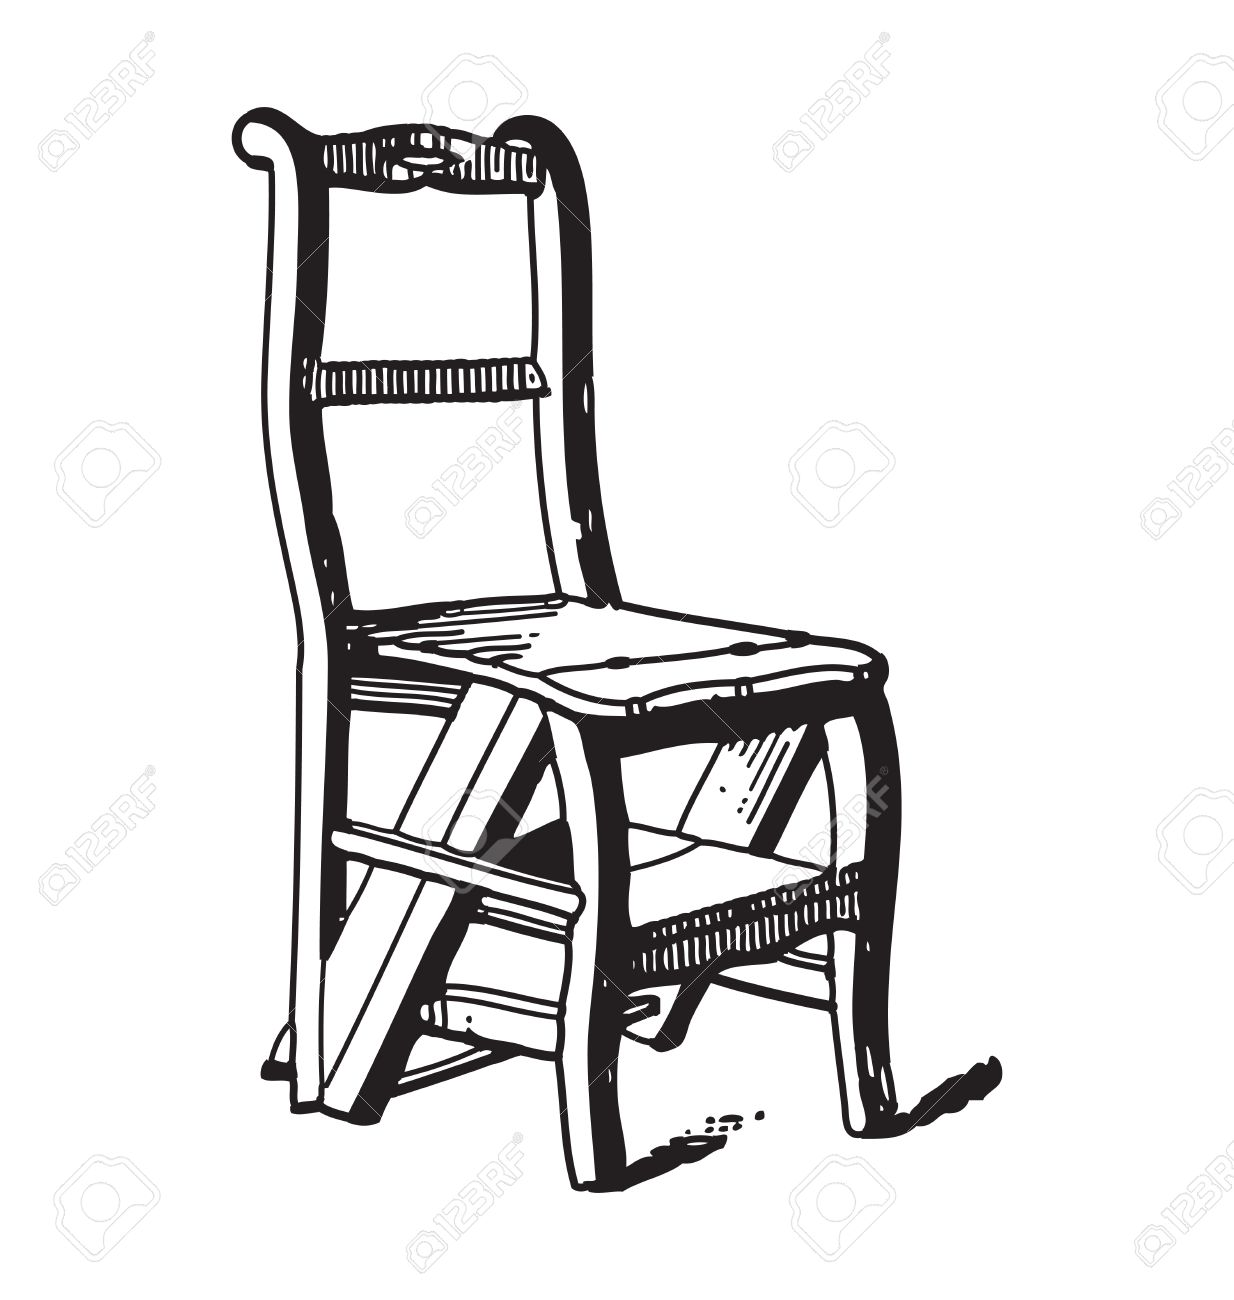 Antique Style Engraving Of Vintage Wooden Chair Royalty Free